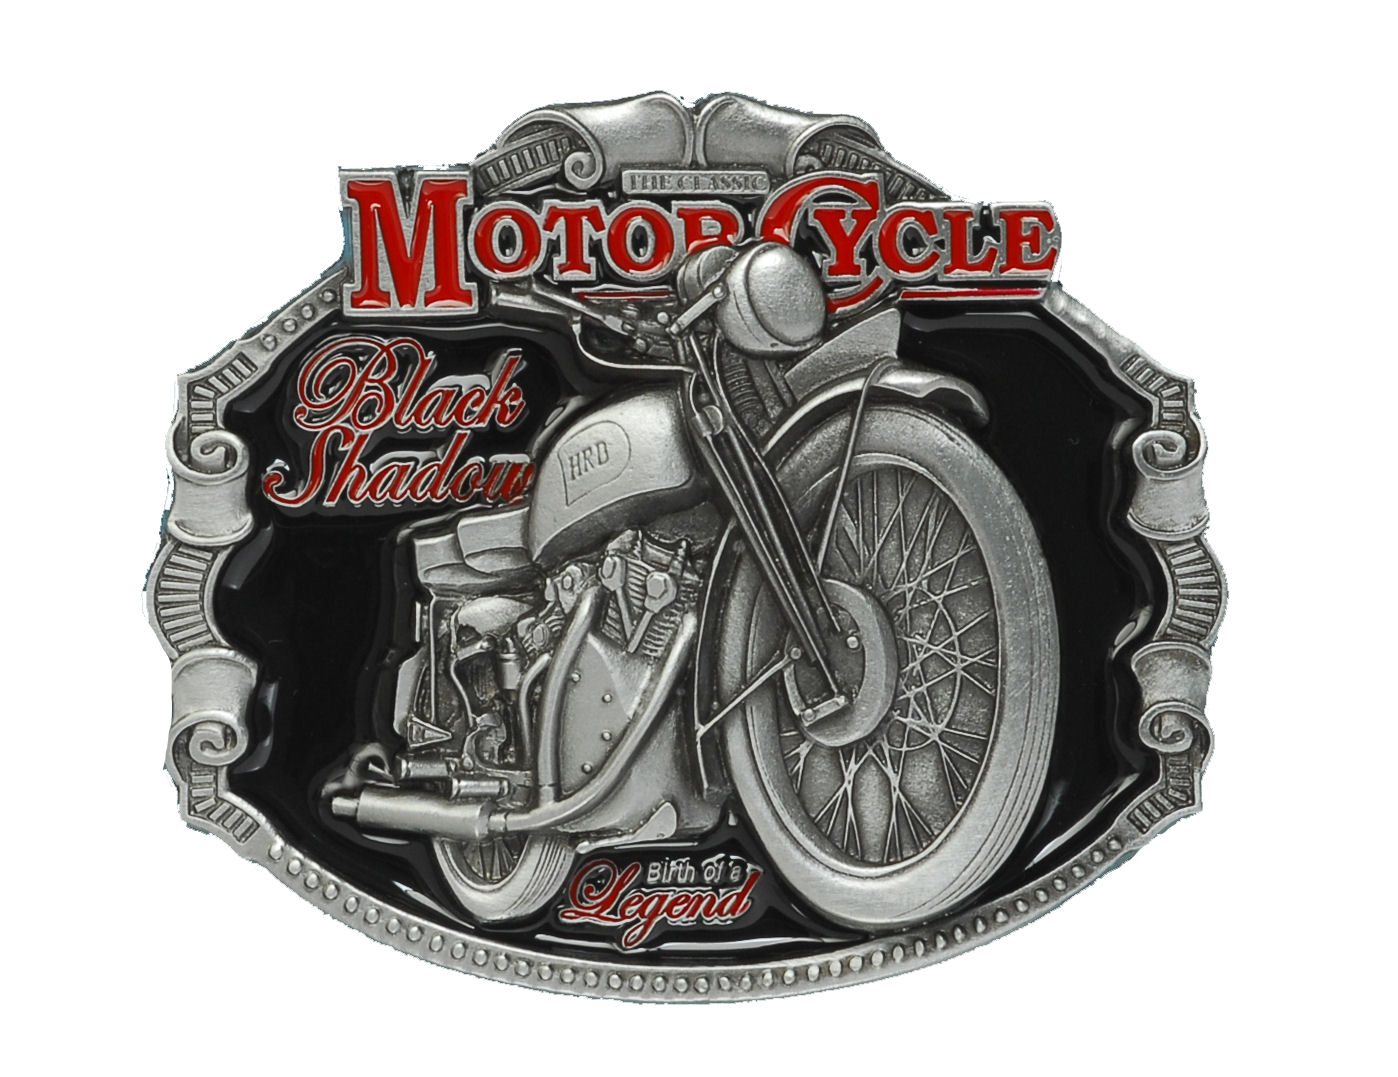 H.R.D. Vincent Motorcycle Belt Buckle